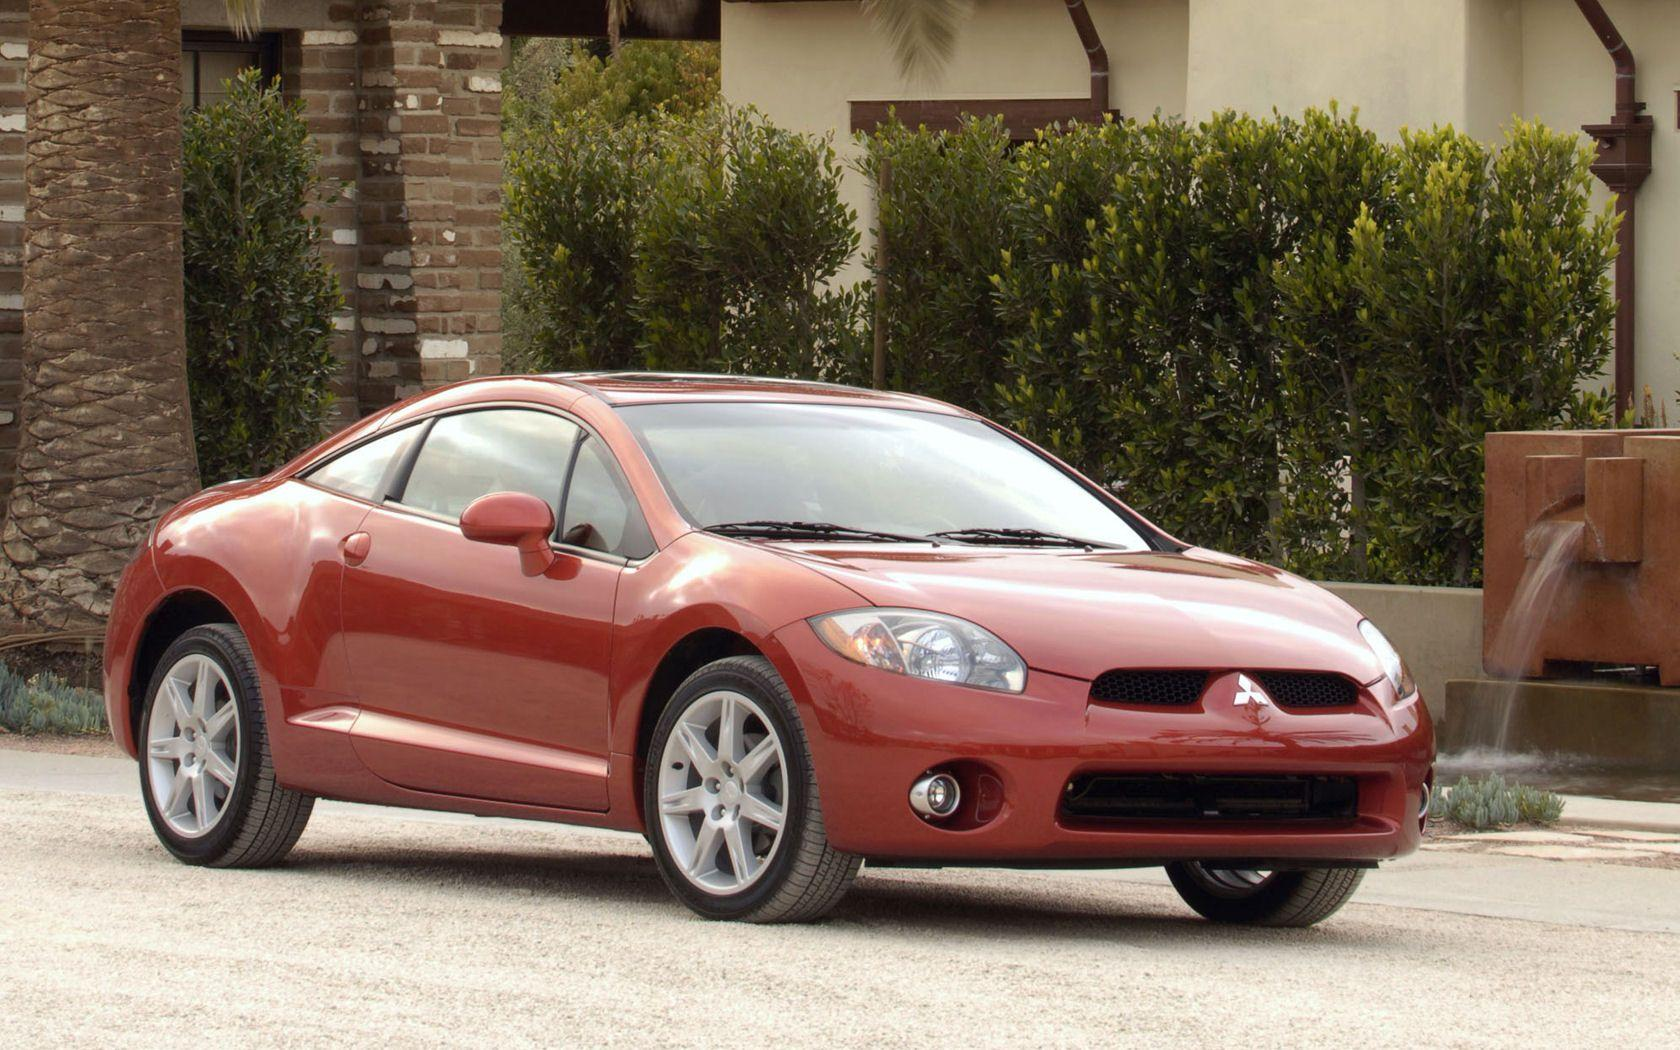 Mitsubishi Eclipse Coupe, Spyder, Convertible - Free Widescreen ...